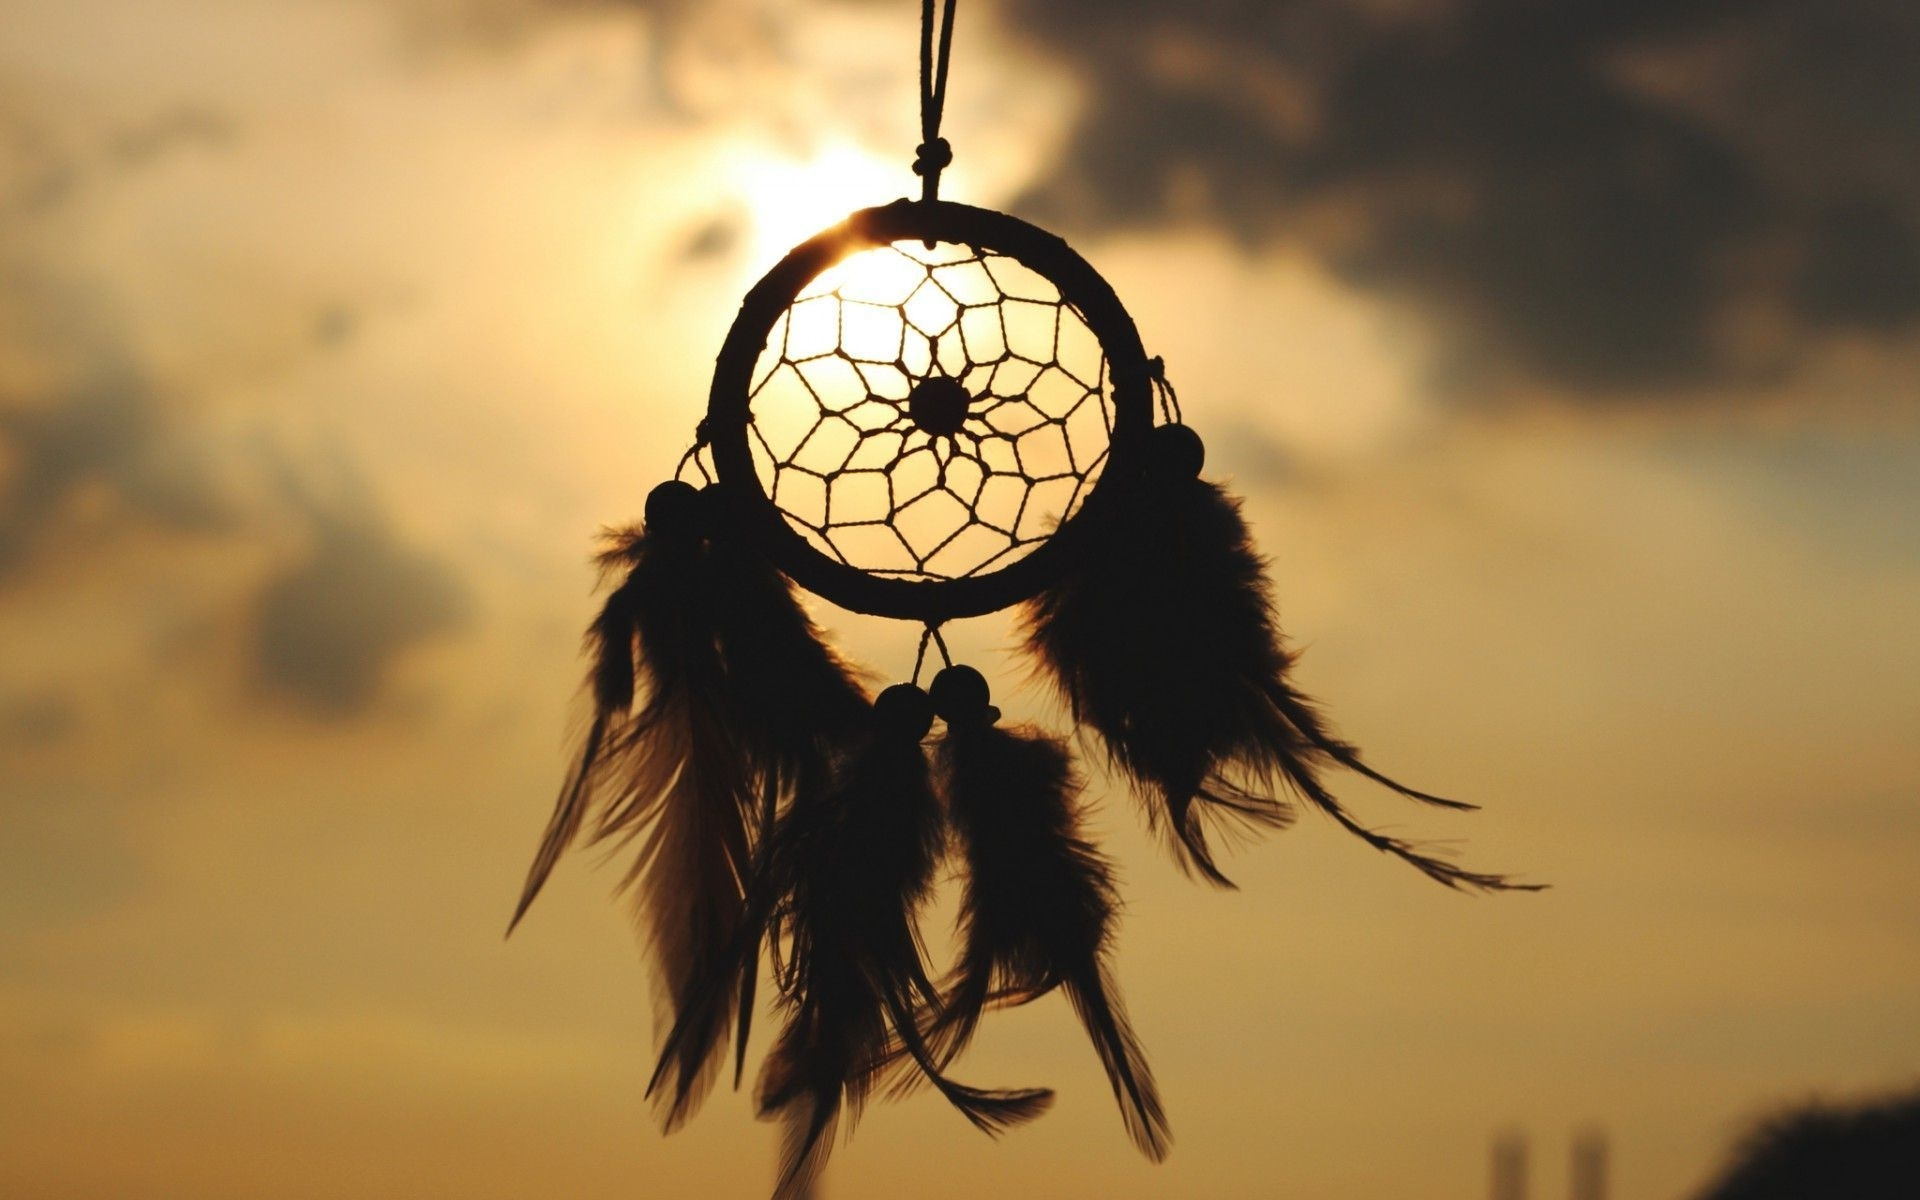 Title : dreamcatcher backgrounds, wallpapers and pictures — download free. Dimension : 1920 x 1200. File Type : JPG/JPEG